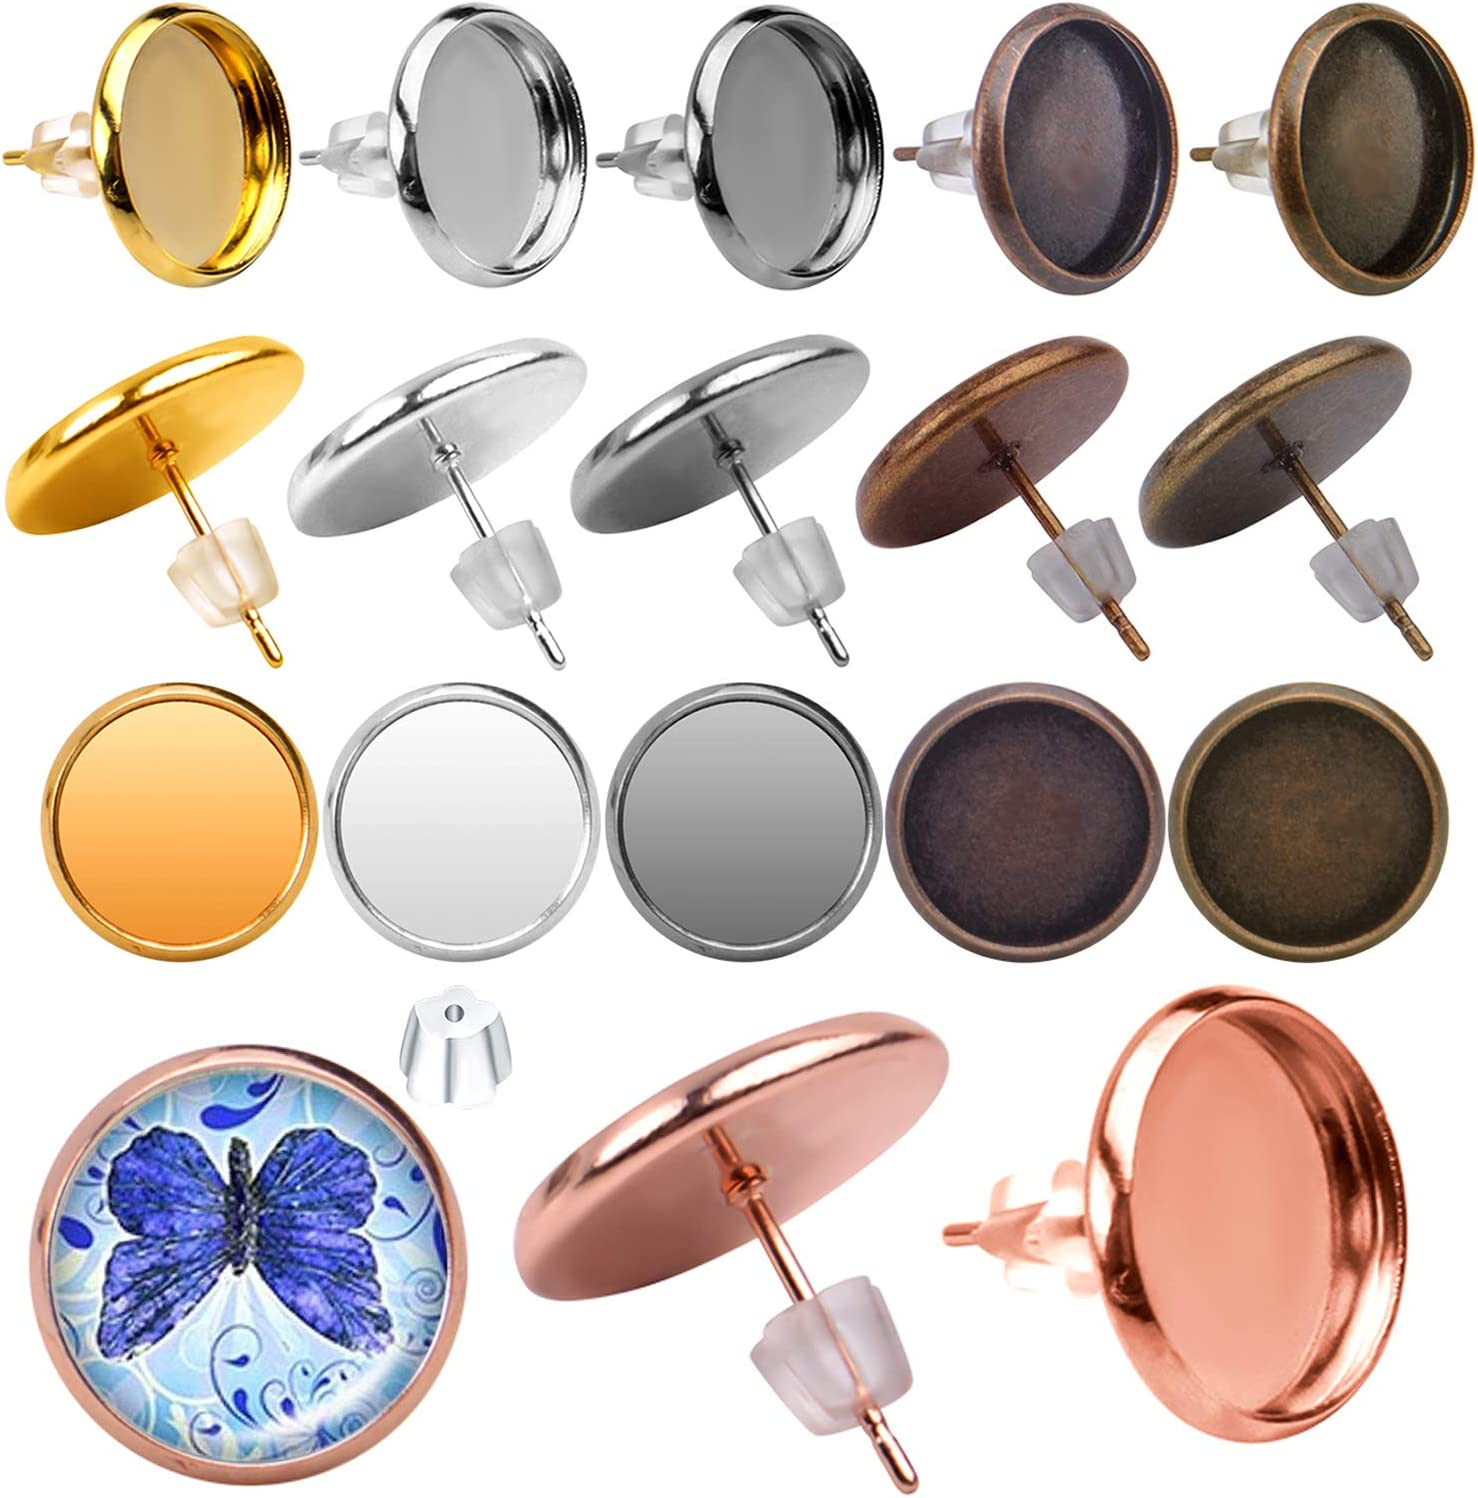 60pcs Stainless Steel Blank Stud Earring Bezel Post Cup fit for 12mm Cabochon with 60pcs Clear Earring Backs for Jewelry Making Earring Cabochon Settings 6 Colors